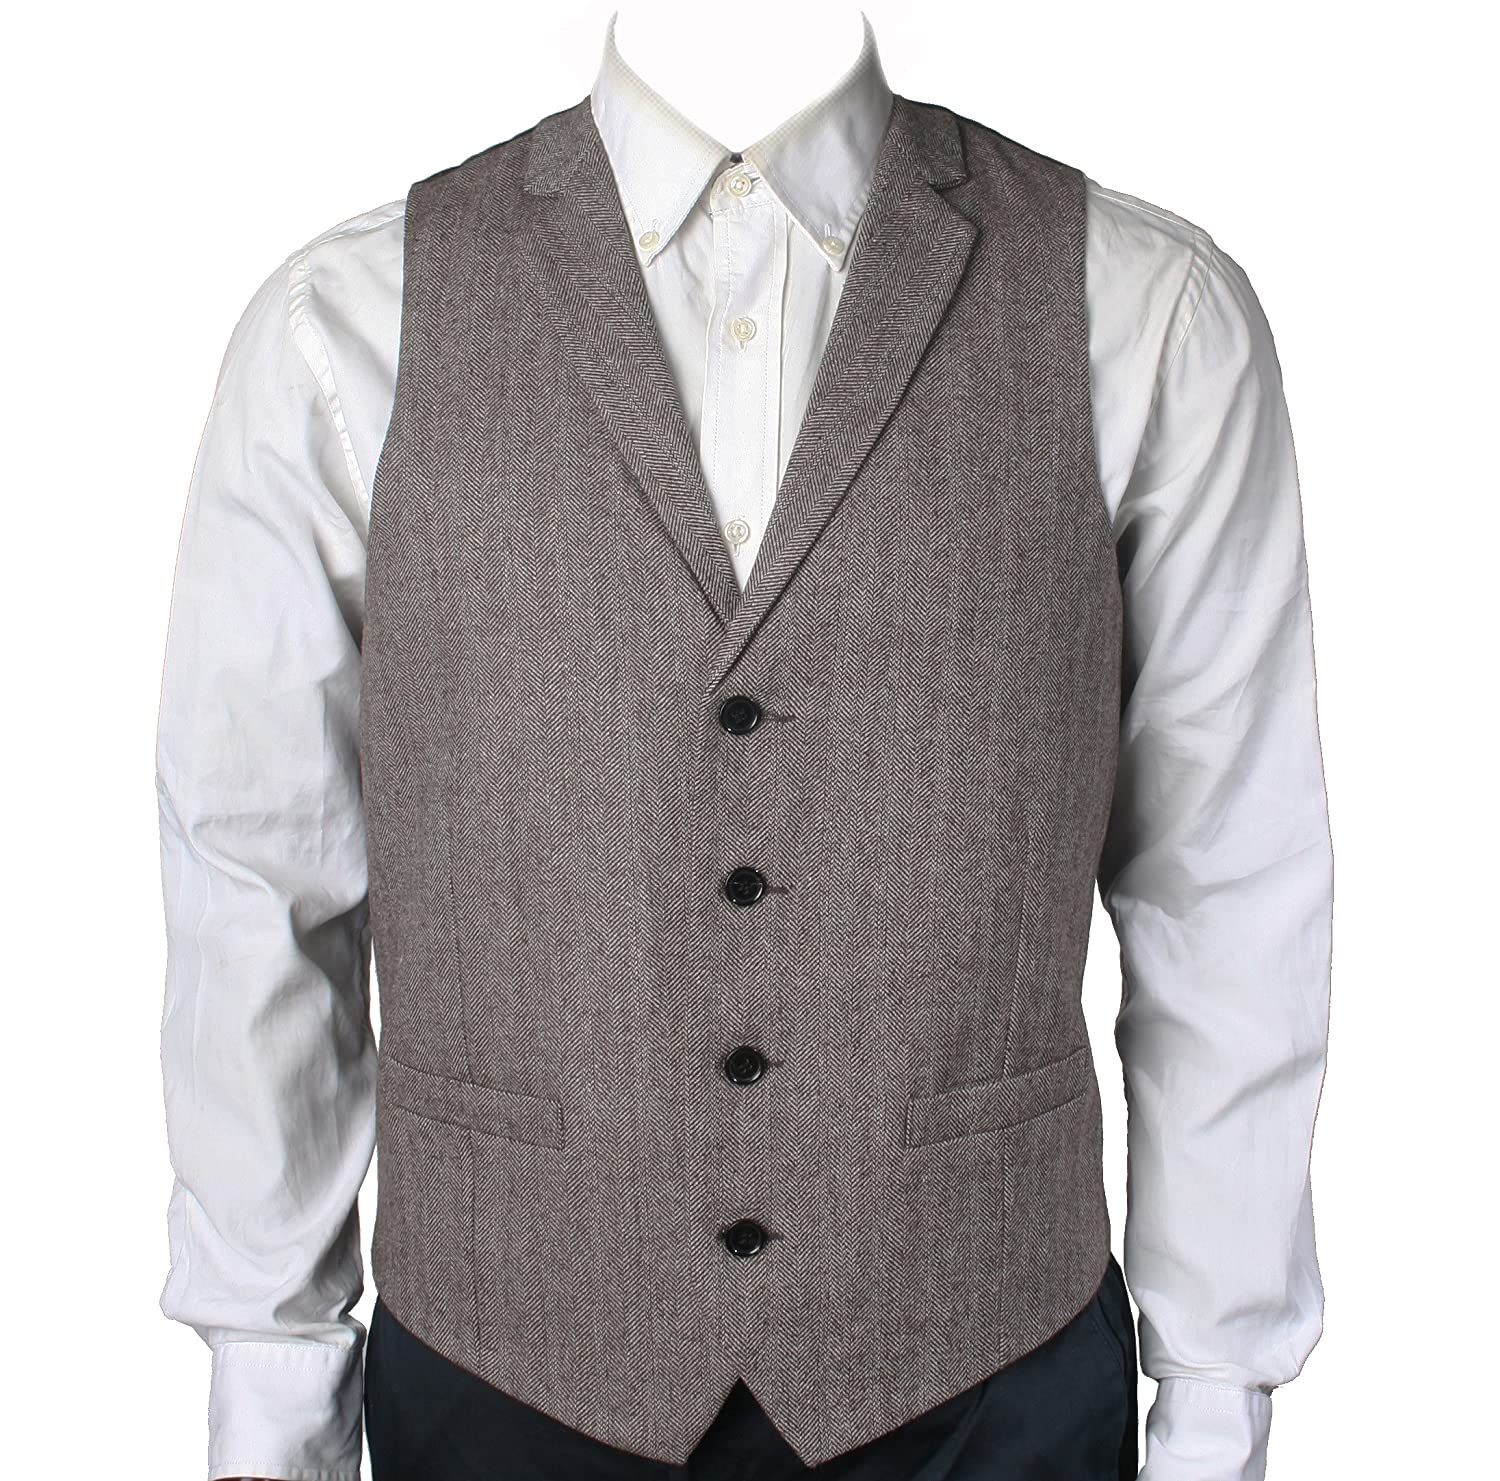 Men's Vintage Inspired Vests Herringbone/Tweed Tailored Collar Suit Vest $37.00 AT vintagedancer.com